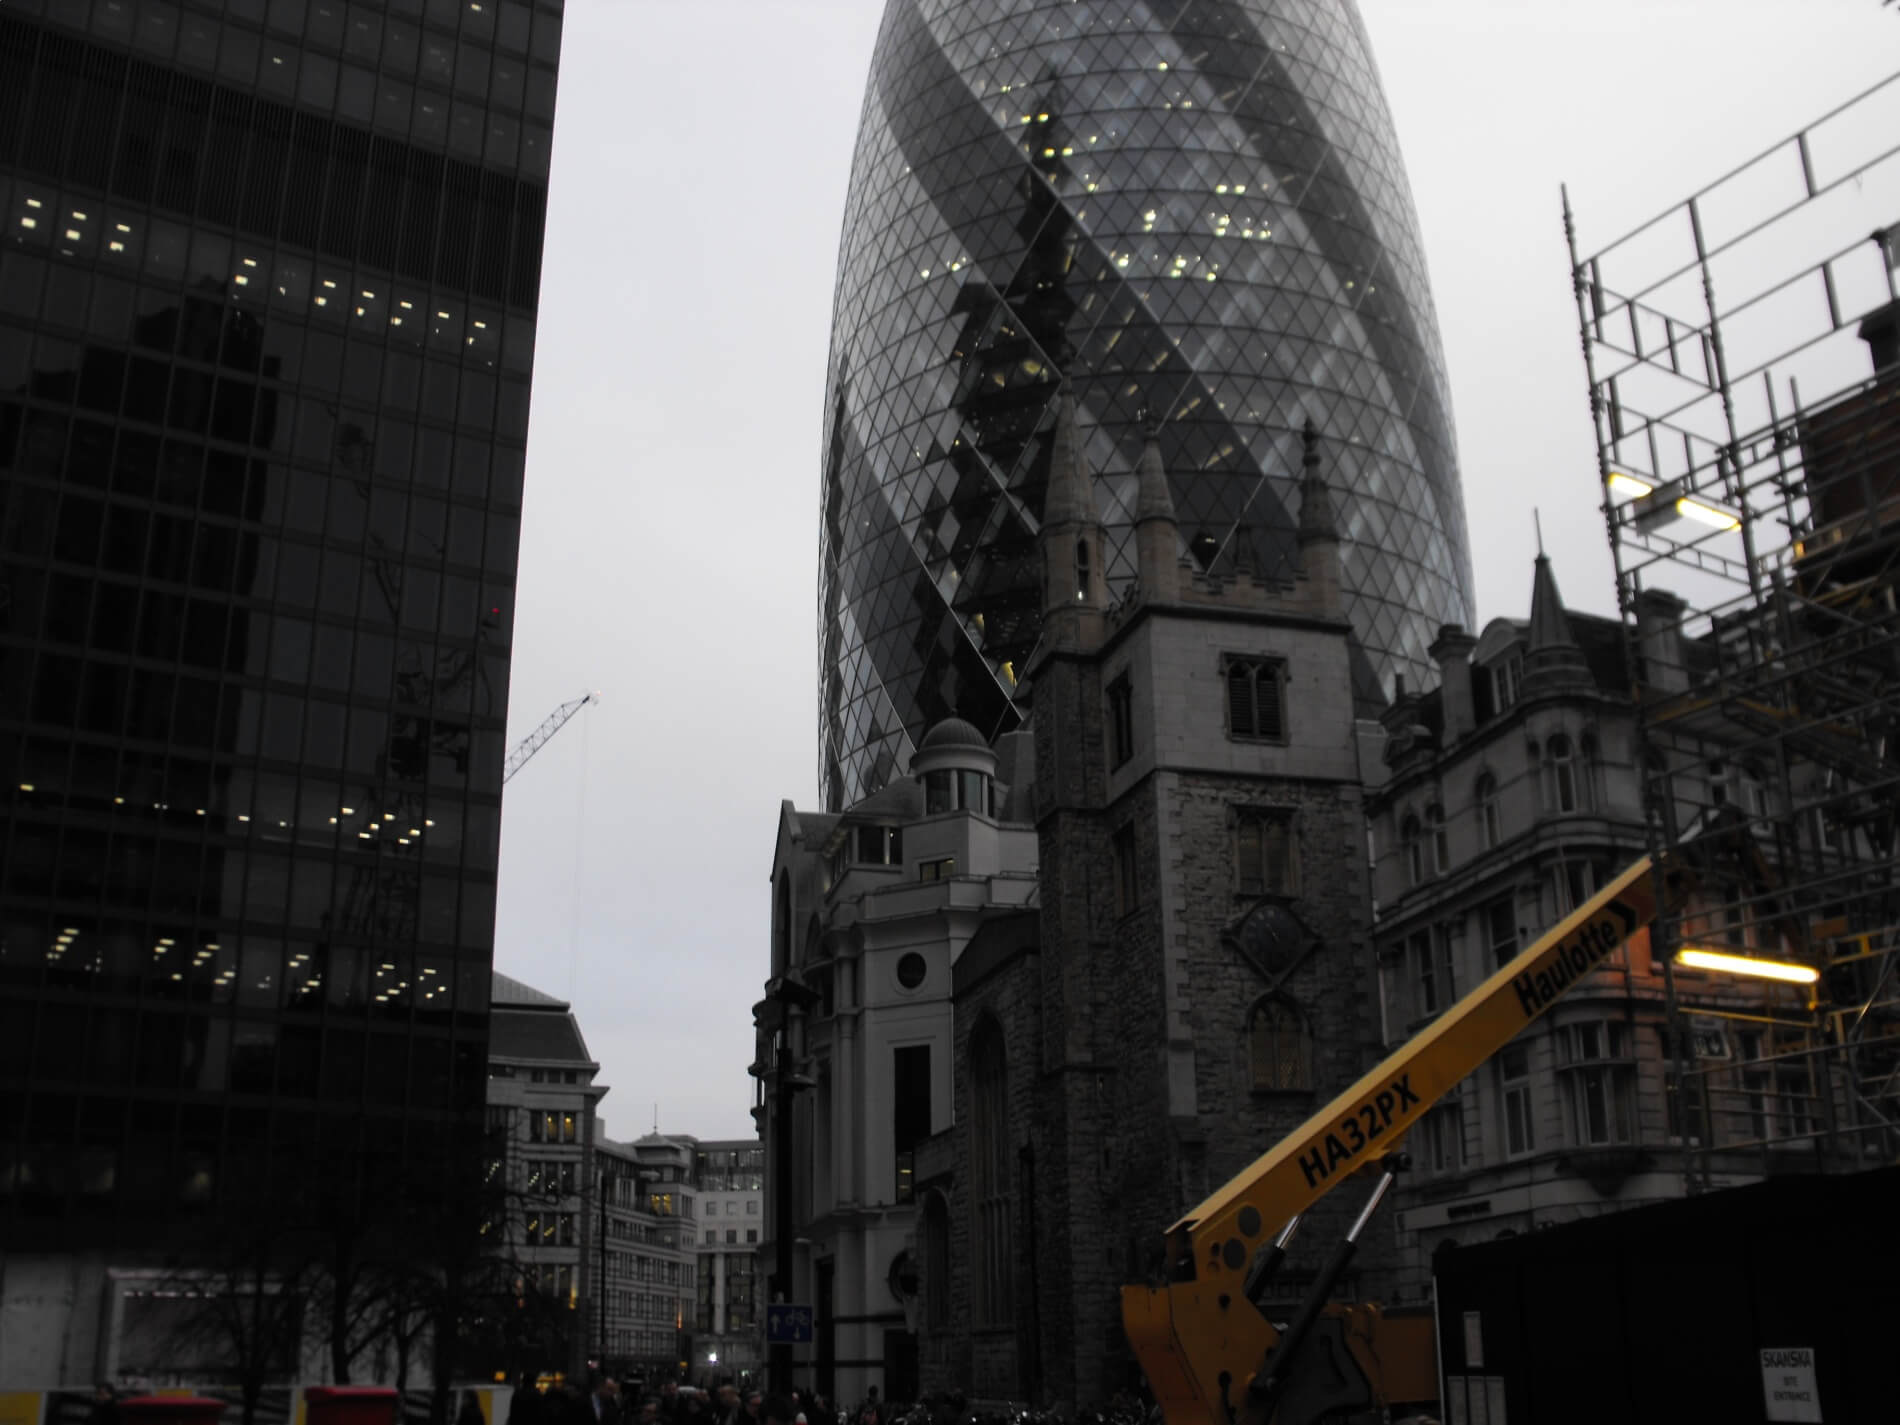 New, old and older buildings side by side in London financial district